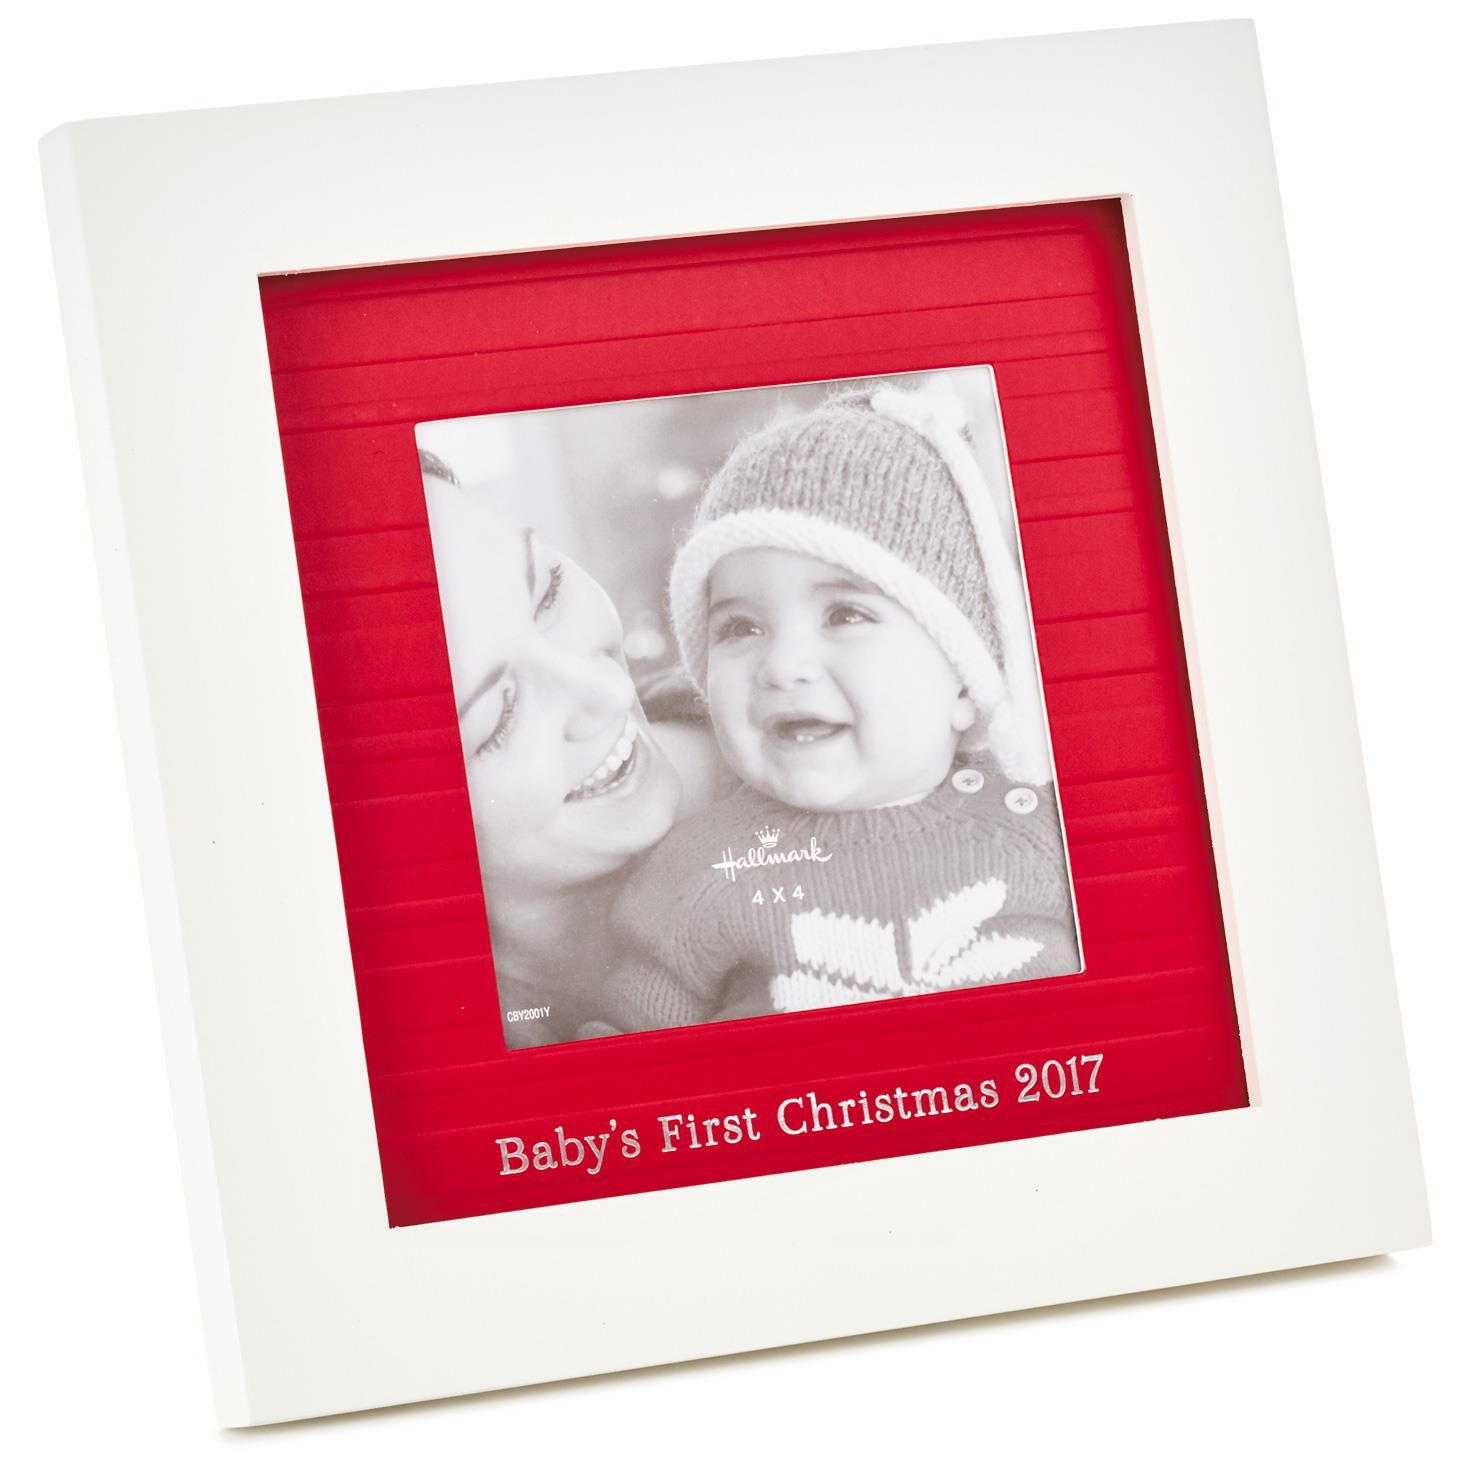 babys first christmas 2017 picture frame 4x4 picture frames hallmark